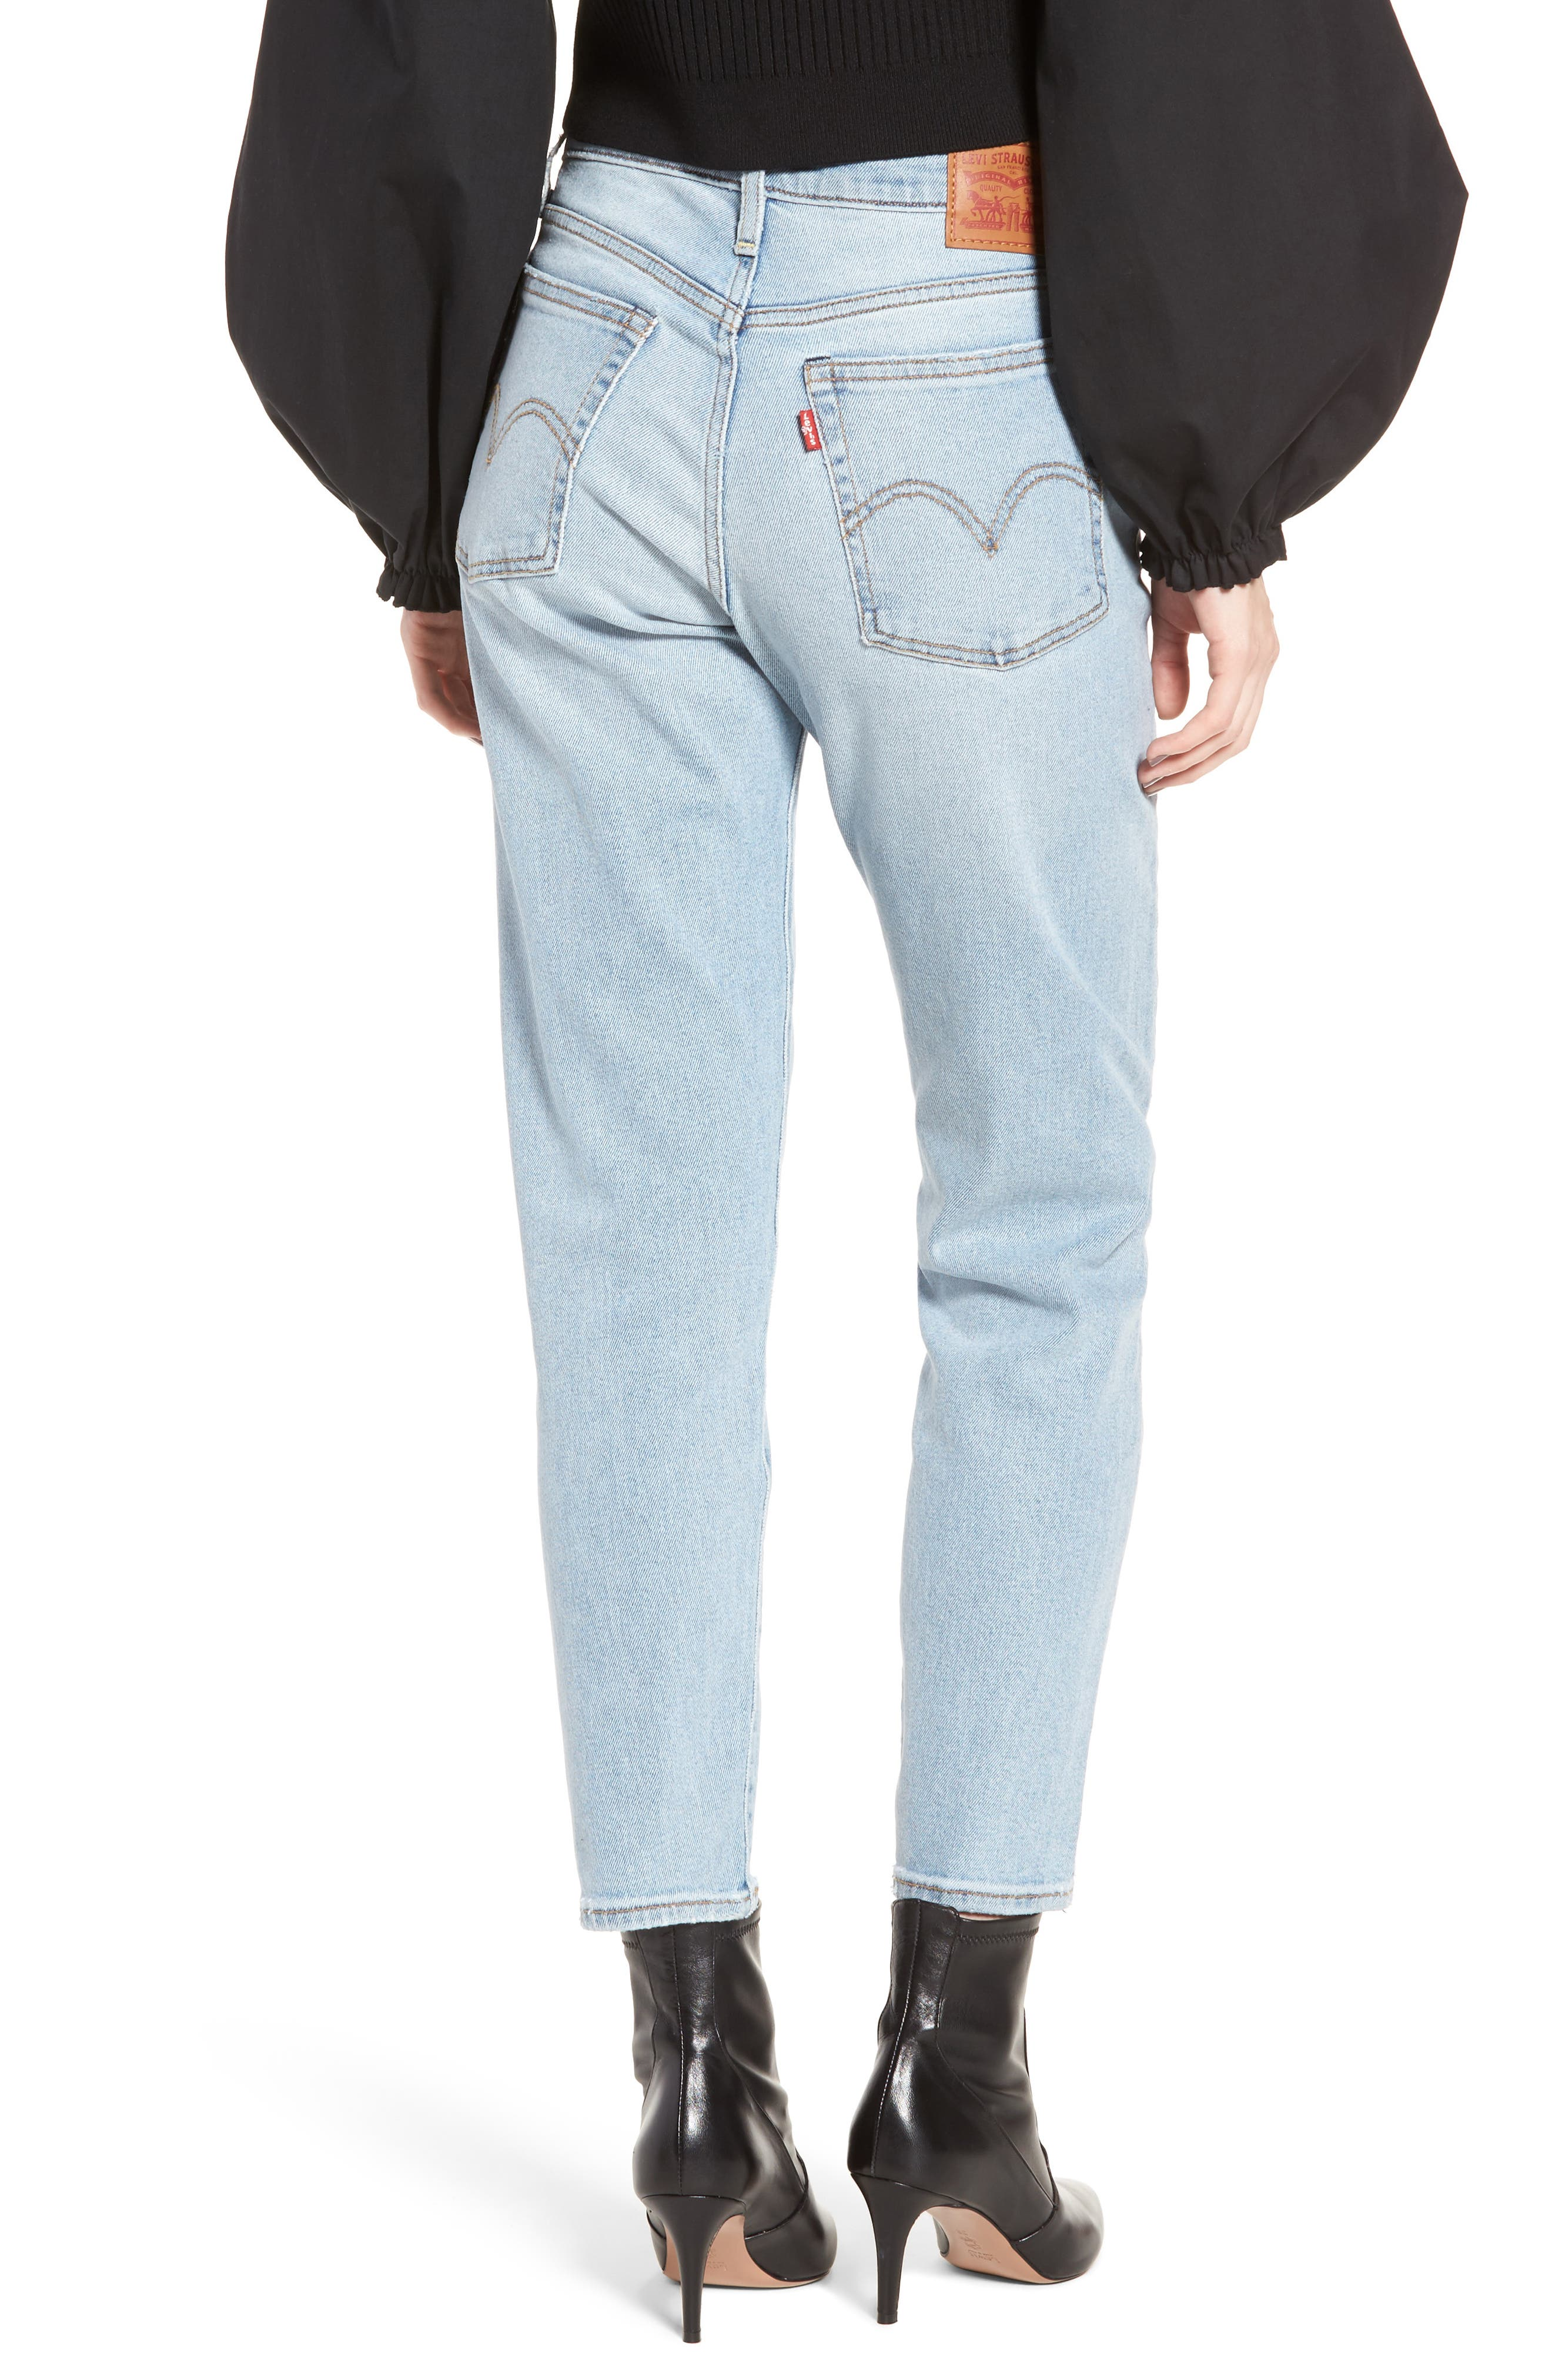 Wedgie Icon Fit High Waist Crop Jeans,                             Alternate thumbnail 2, color,                             BAUHAUS BLUES